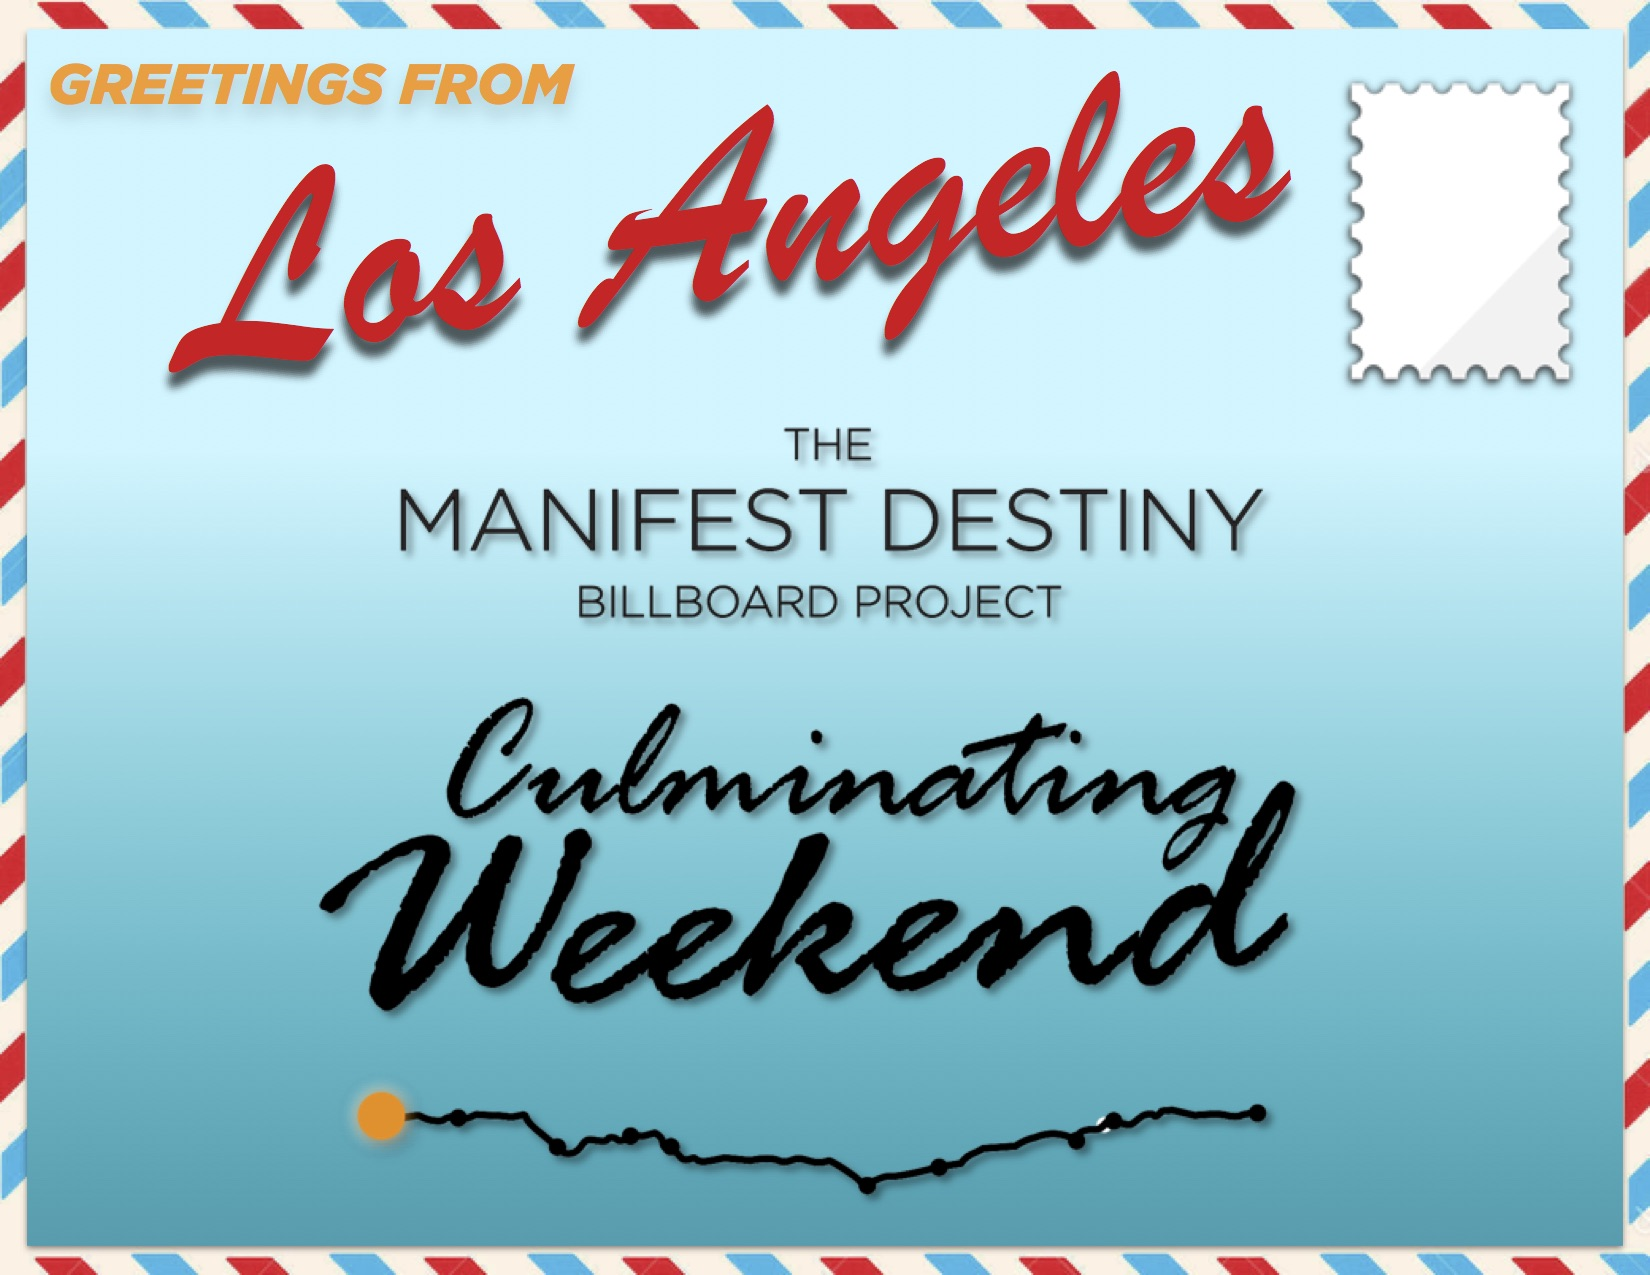 The Manifest Destiny Billboard Project, Culminating Weekend